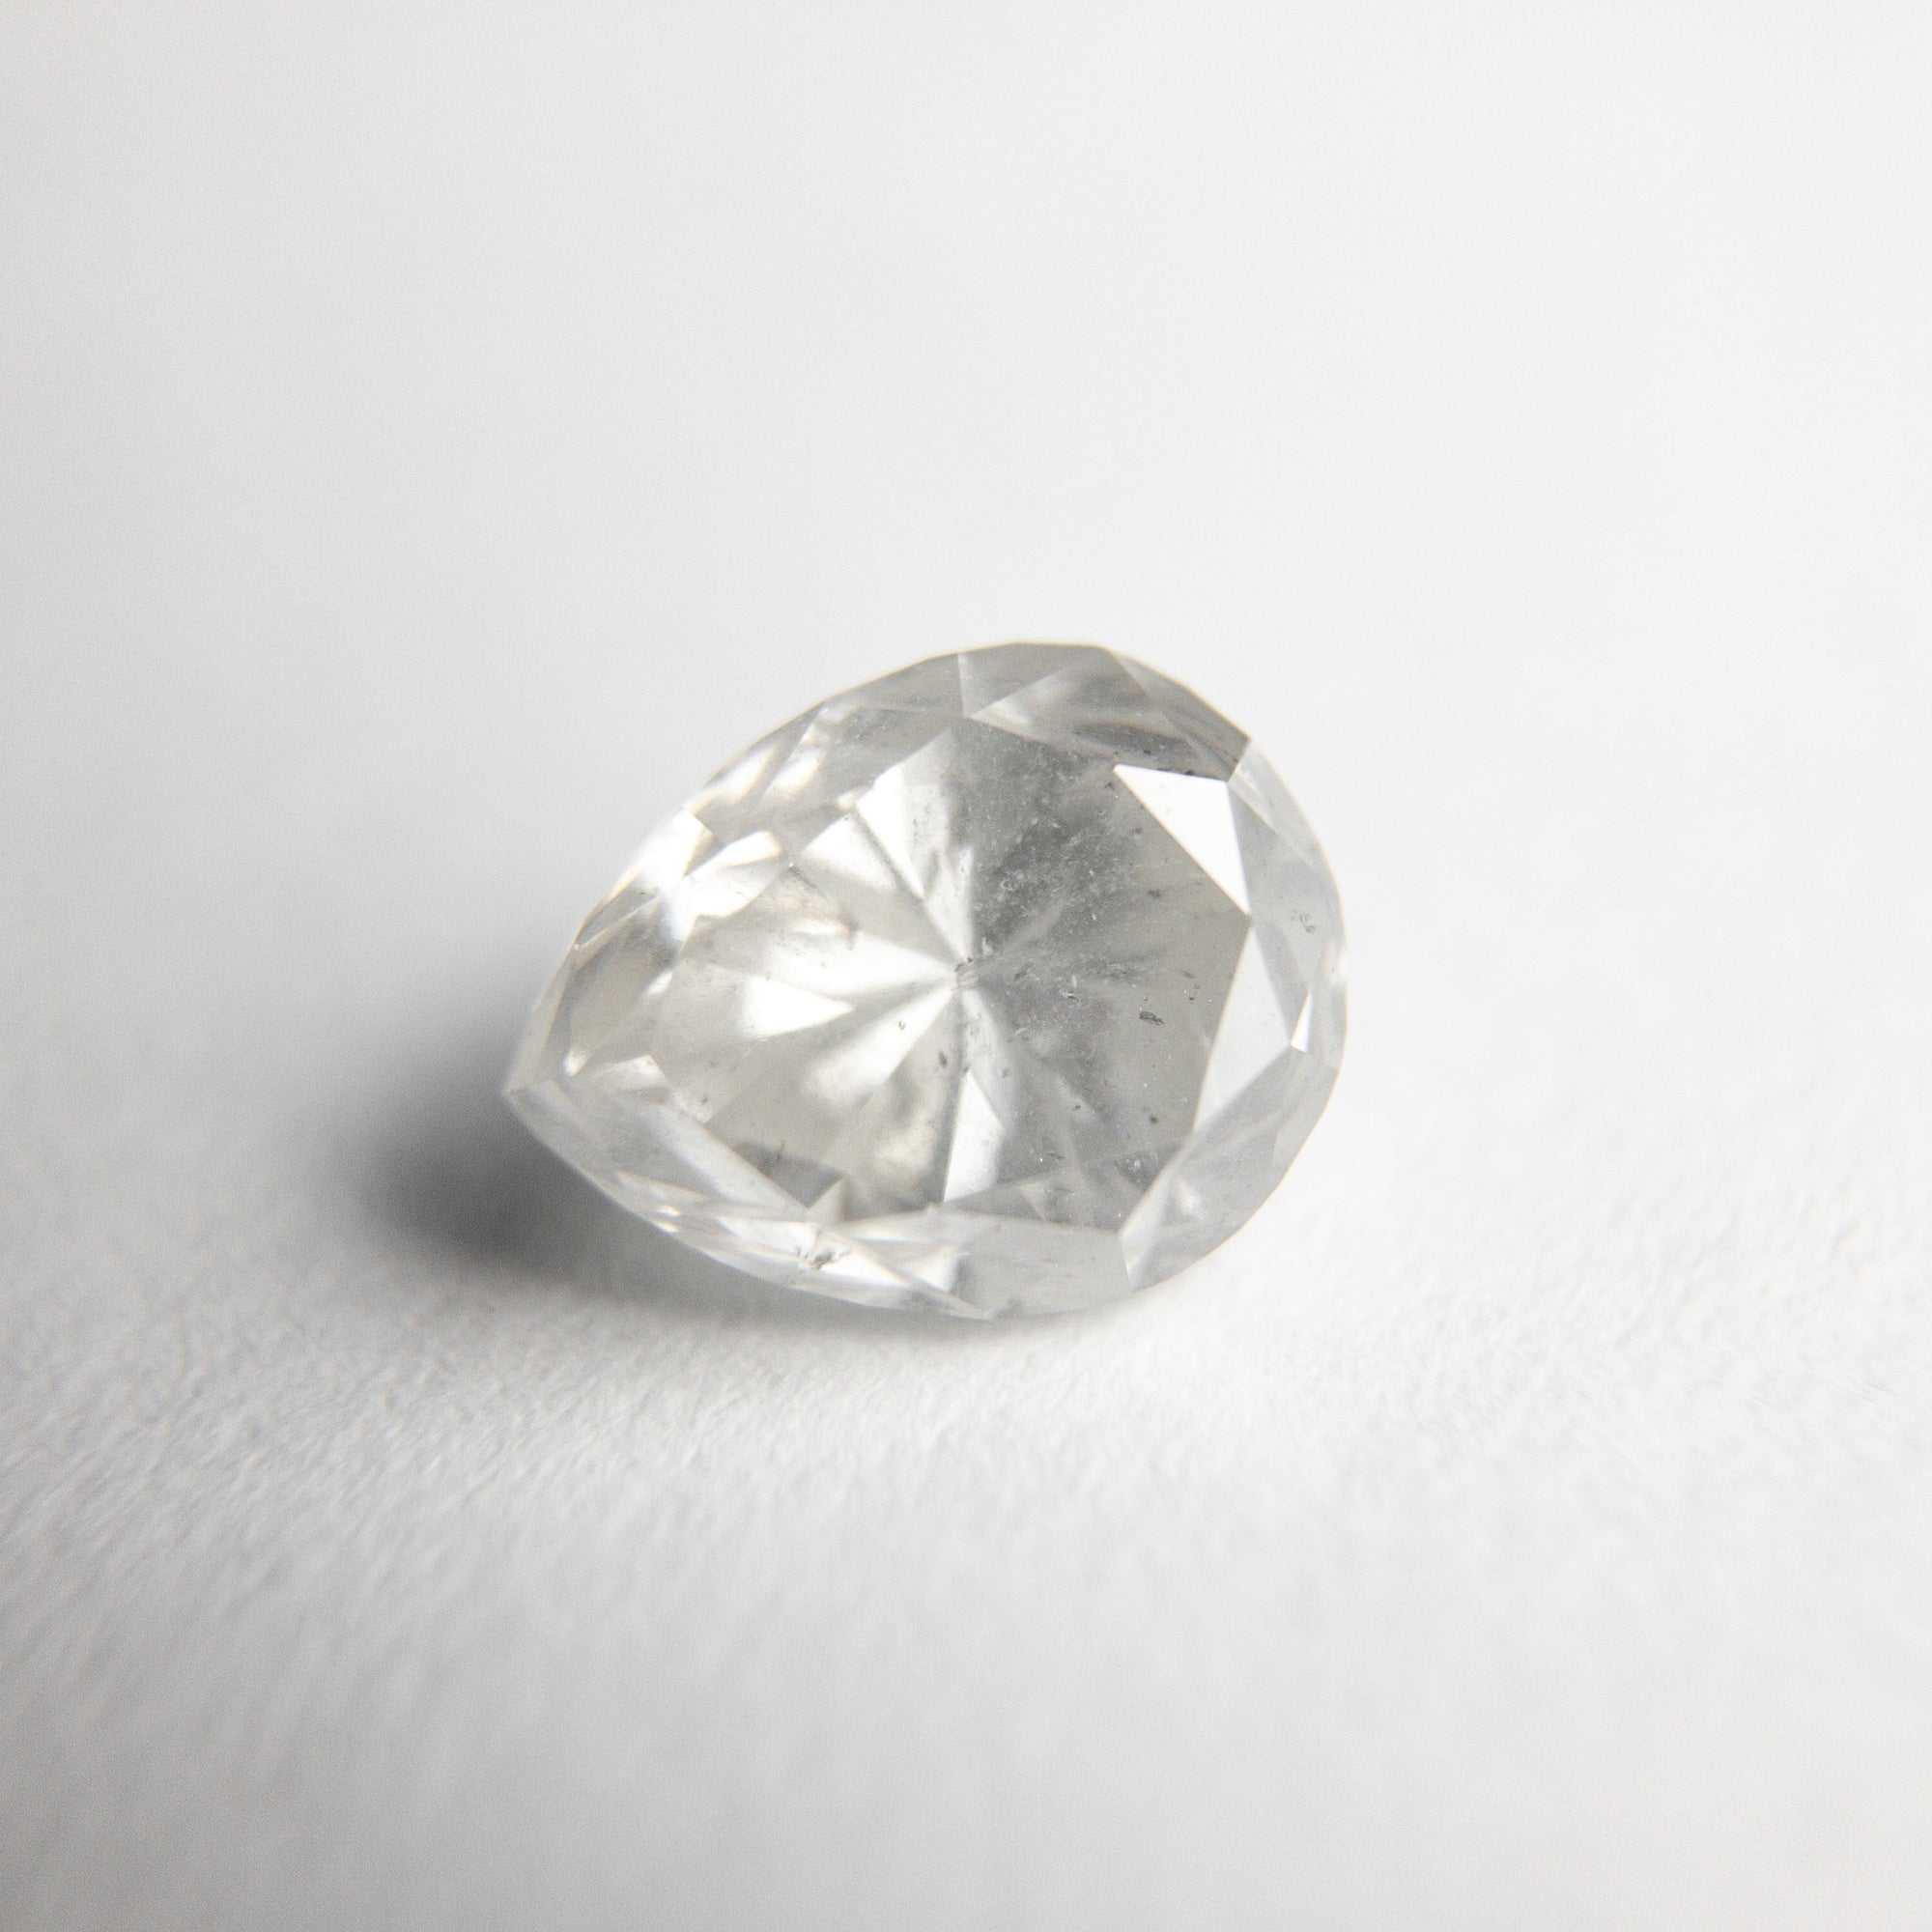 1.18ct 7.22x5.64x4.36mm Pear Brilliant 18399-03